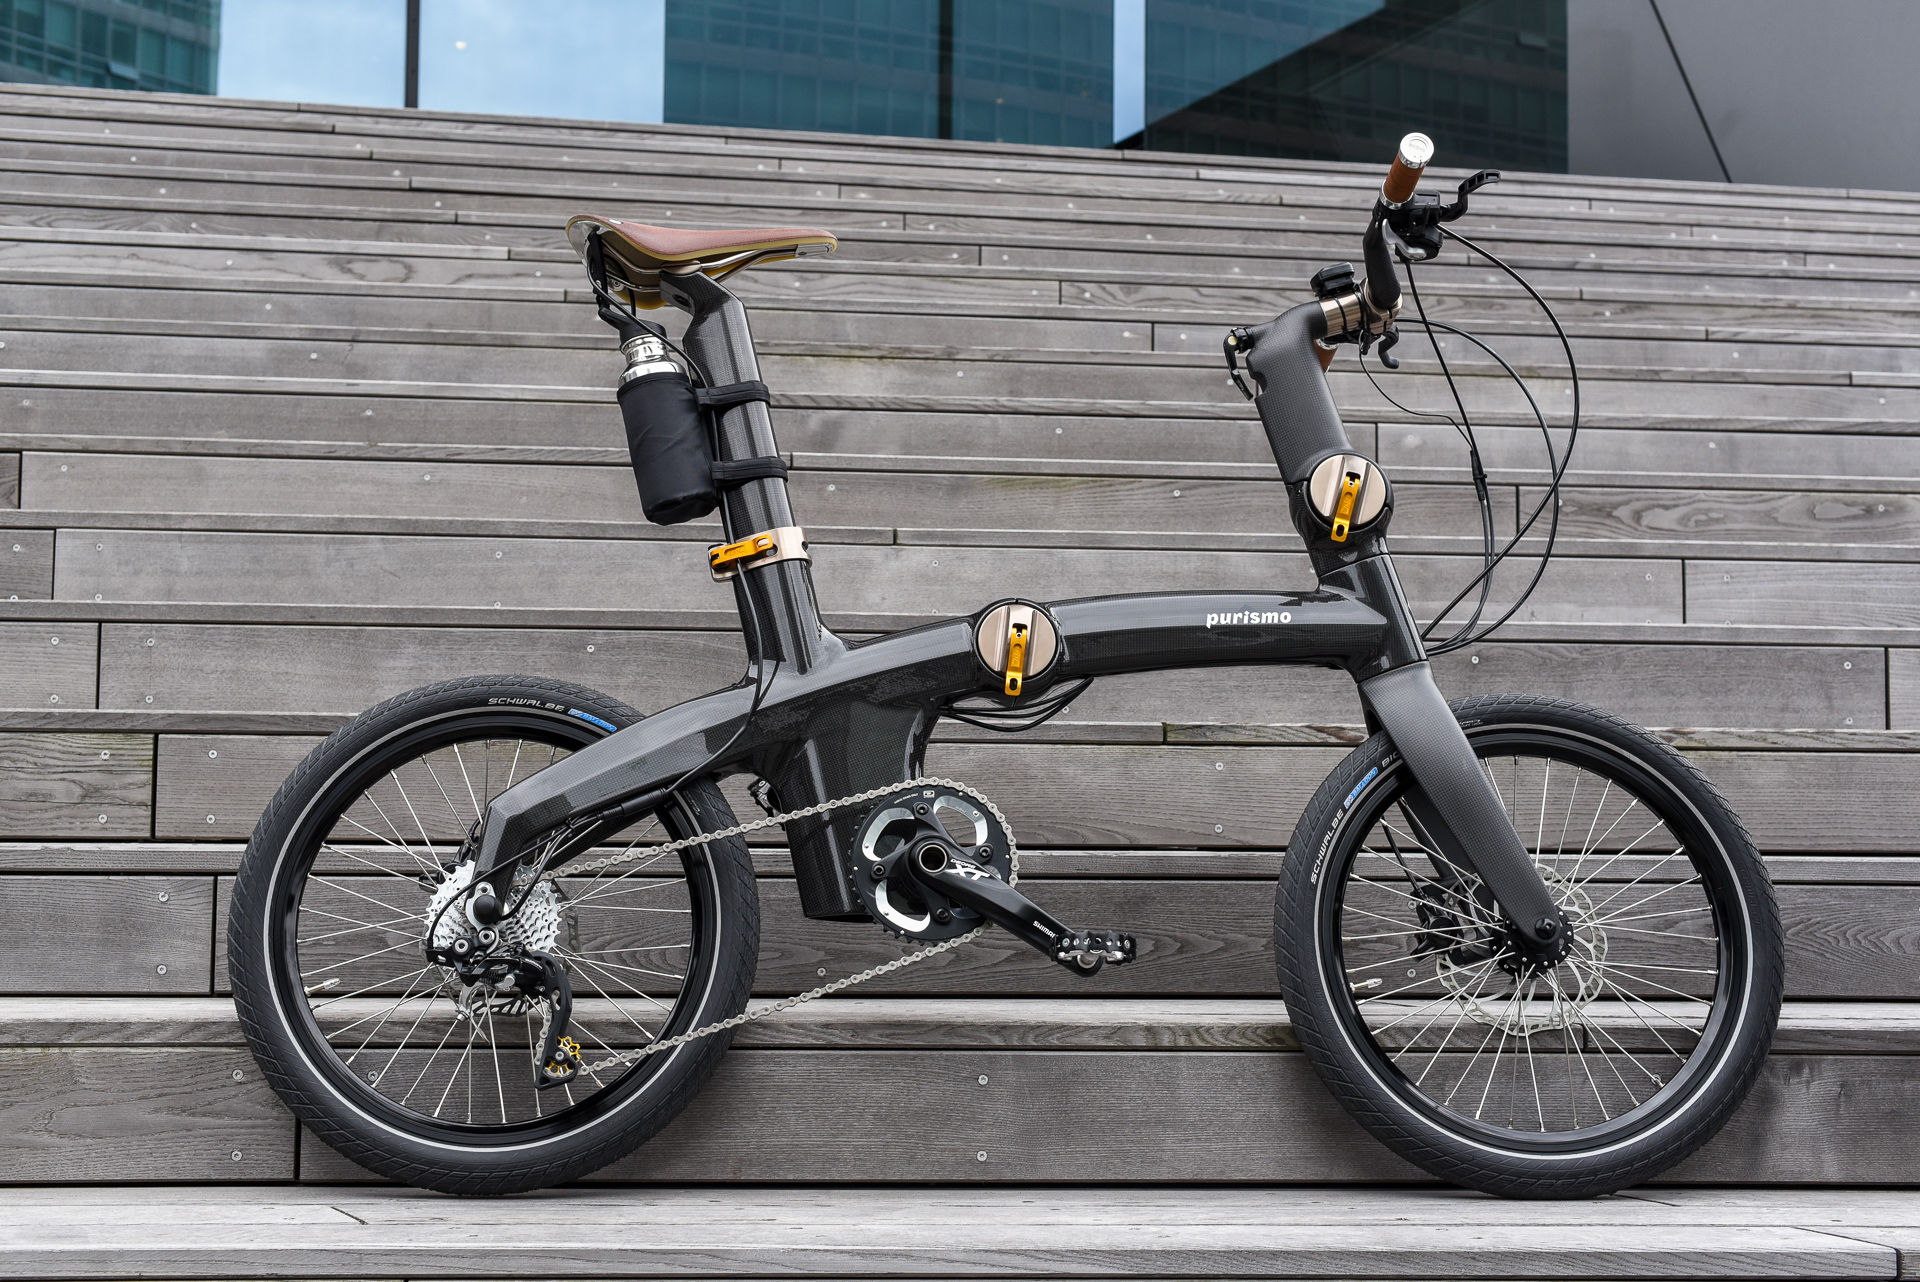 purismo-electric-folding-bike